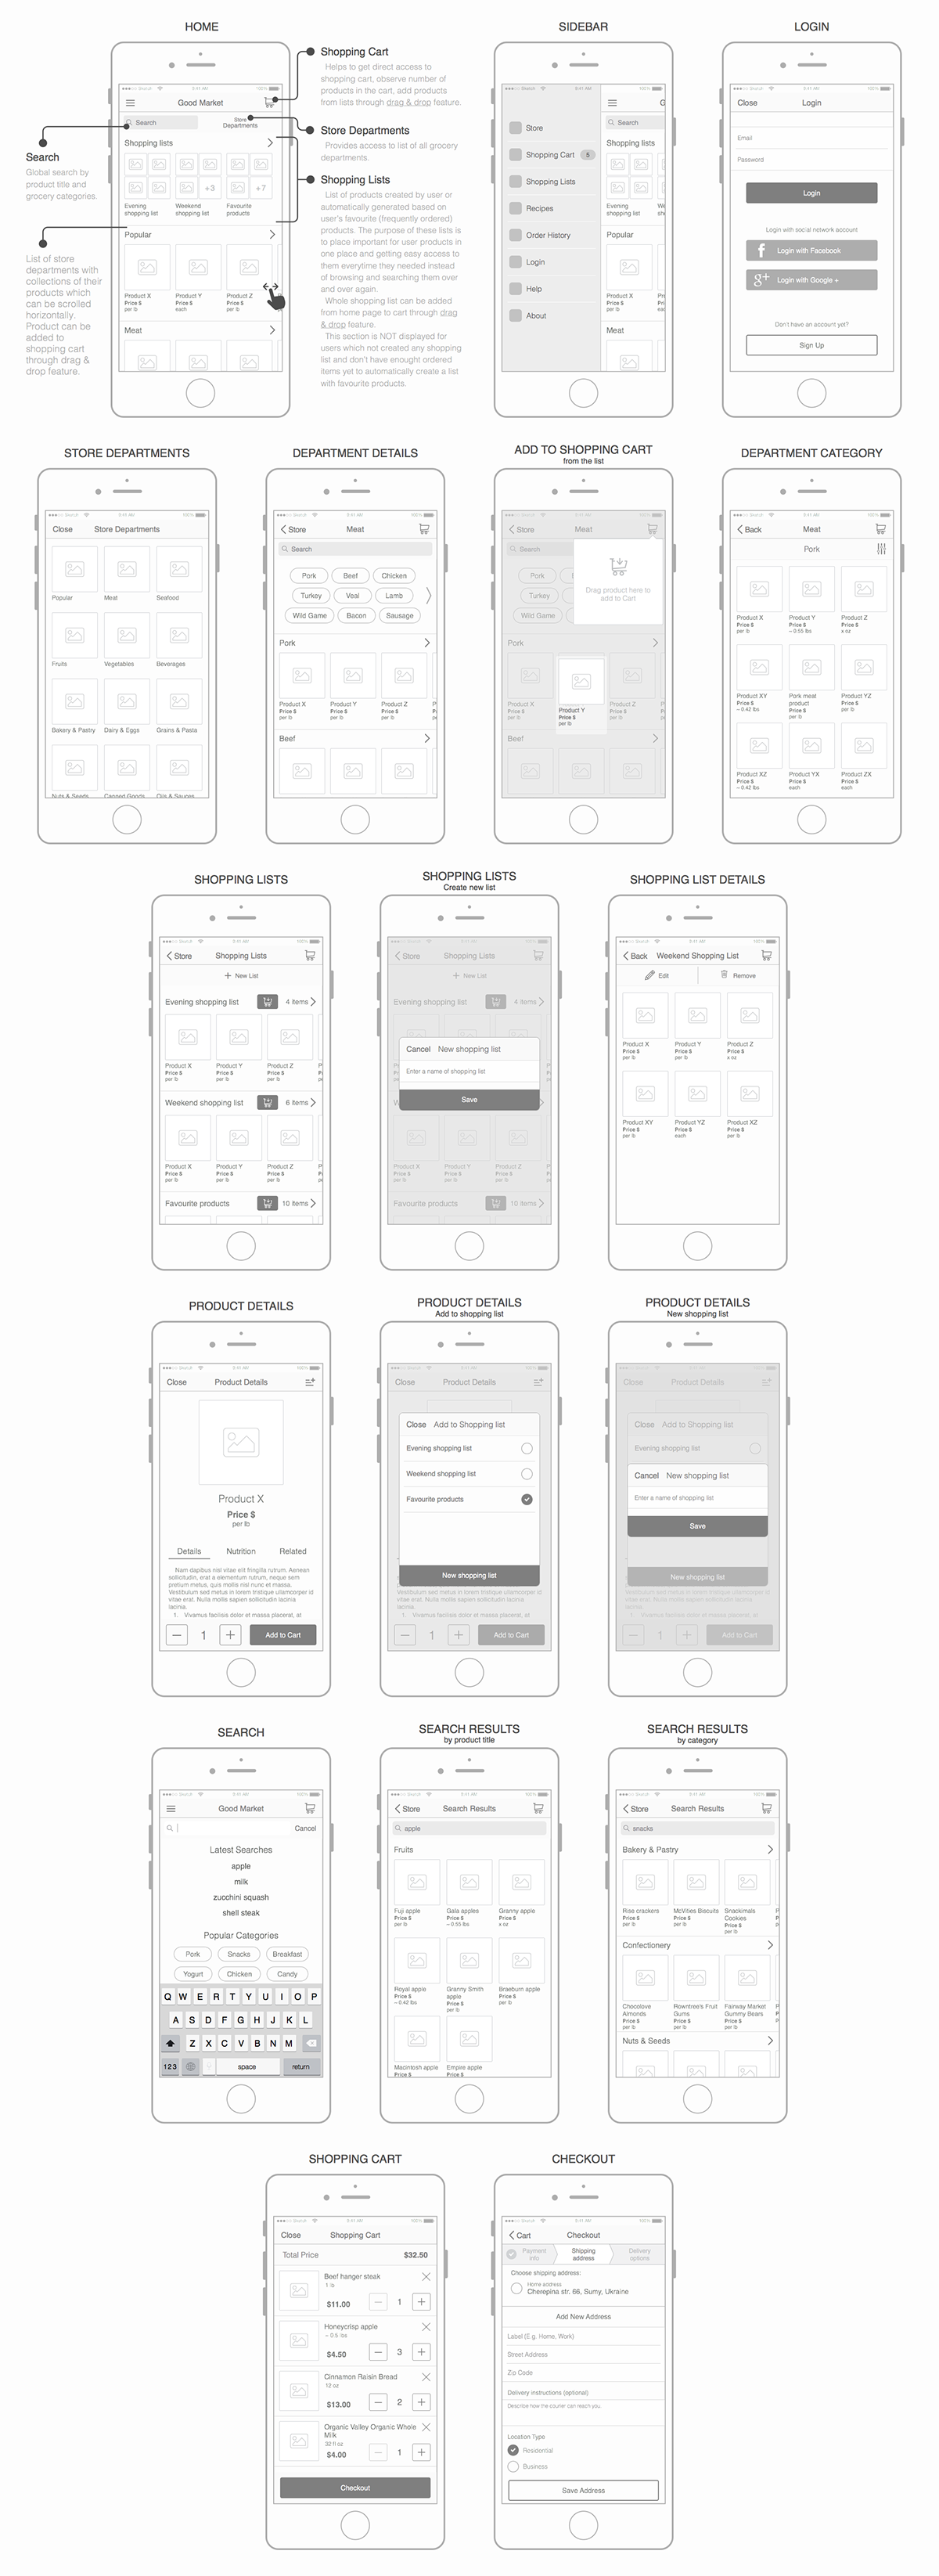 UX Research & Design for Grocery Shopping and Delivery